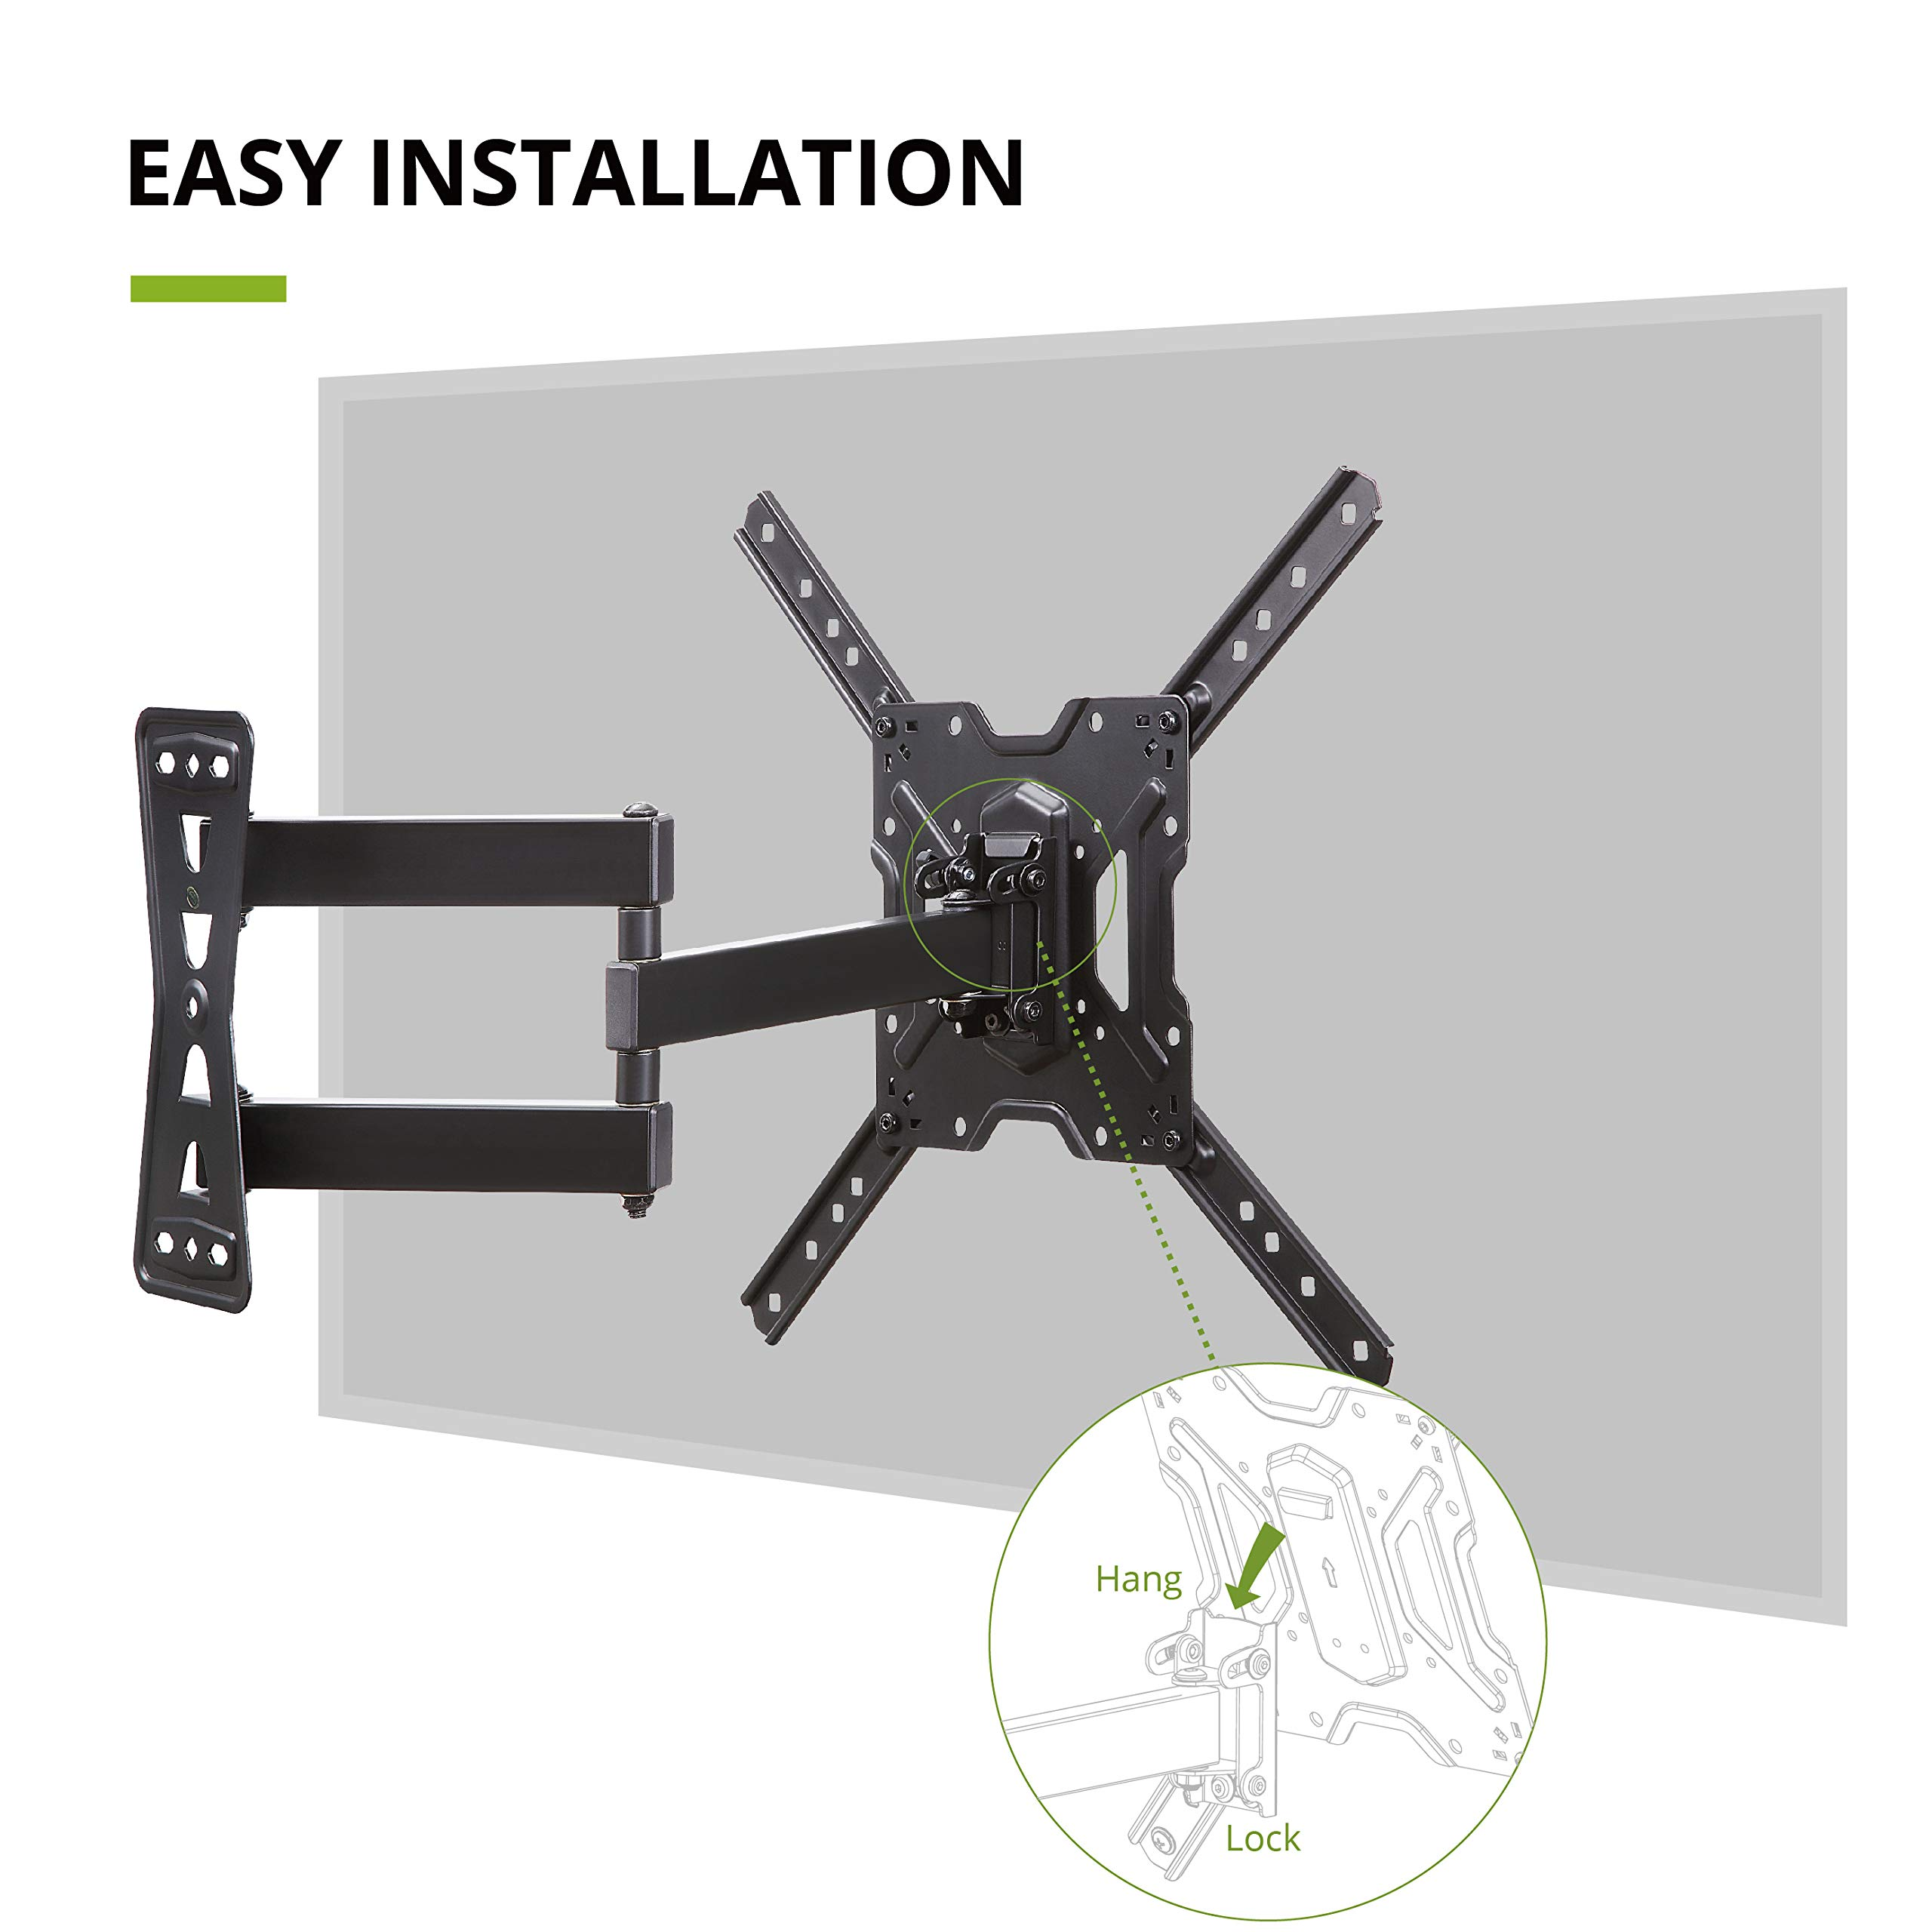 USX MOUNT Full Motion Swivel Articulating Tilt TV Wall Mount Bracket for 26-55'' LED, OLED, 4K TVs-Fit for 32, 40, 50 TV with VESA Up to 400x400mm-Weight Capacity Up to 60lbs by USX MOUNT (Image #6)